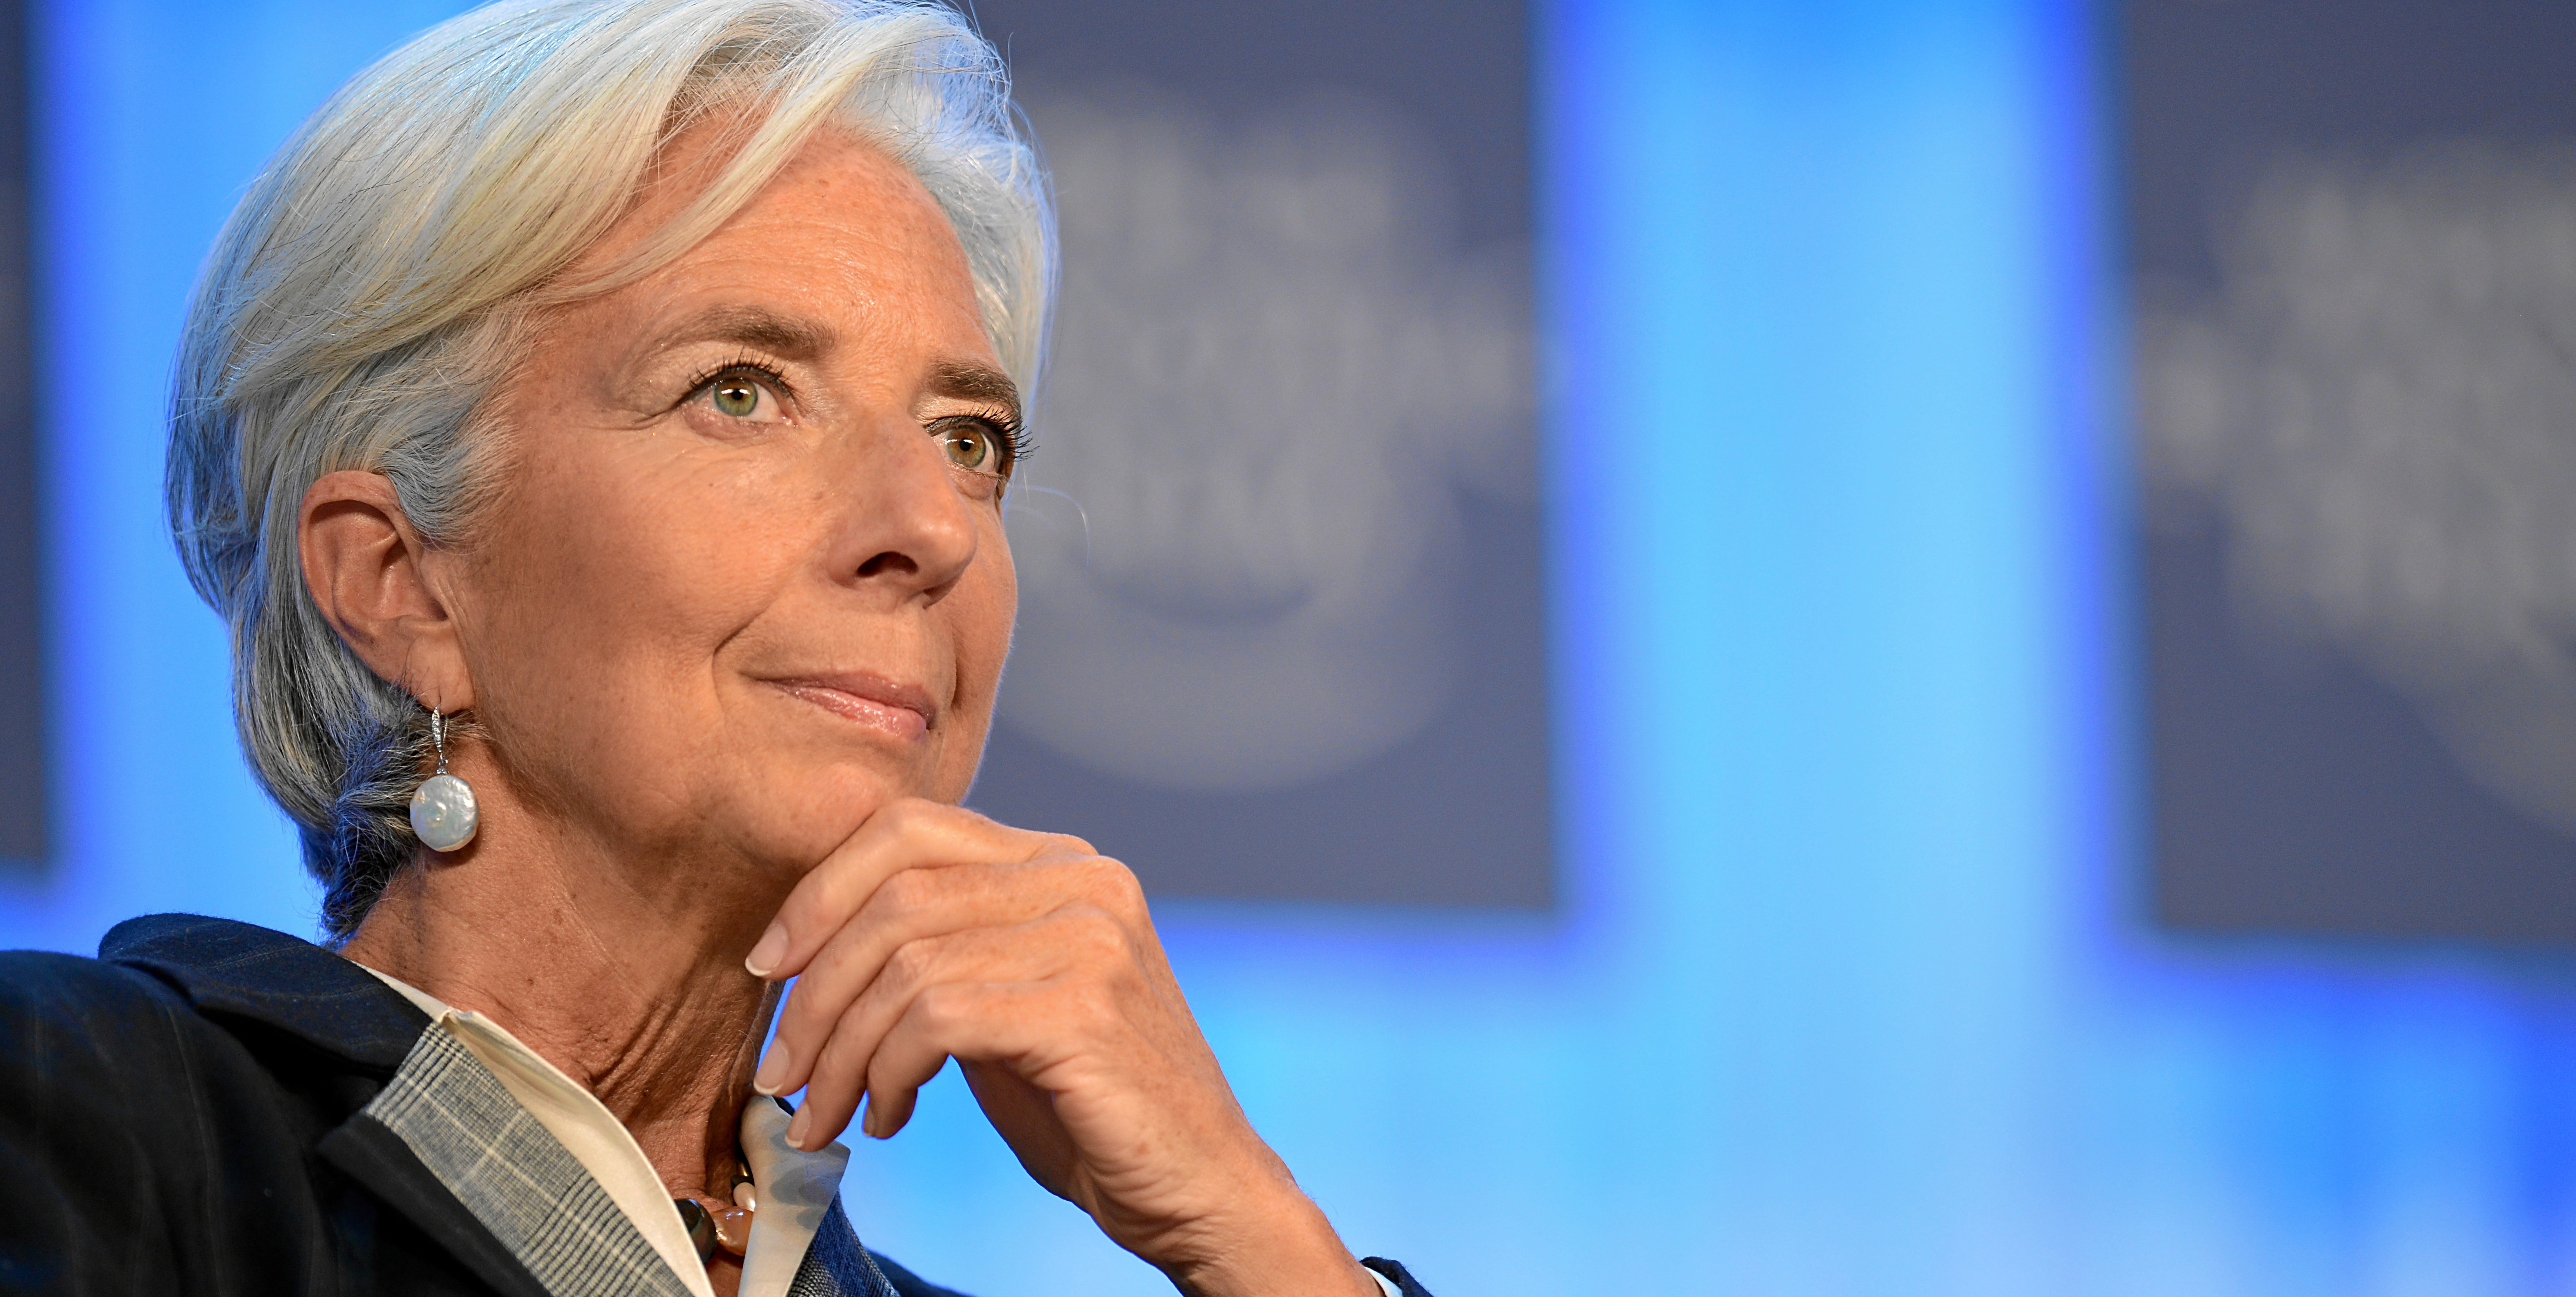 DAVOS/SWITZERLAND, 25JAN13 - Christine Lagarde, Managing Director, International Monetary Fund (IMF), Washington DC; World Economic Forum Foundation Board Member reflects during the session 'Women in Economic Decision-making' at the Annual Meeting 2013 of the World Economic Forum in Davos, Switzerland, January 25, 2013.   Copyright by World Economic Forum  swiss-image.ch/Photo Michael Wuertenberg